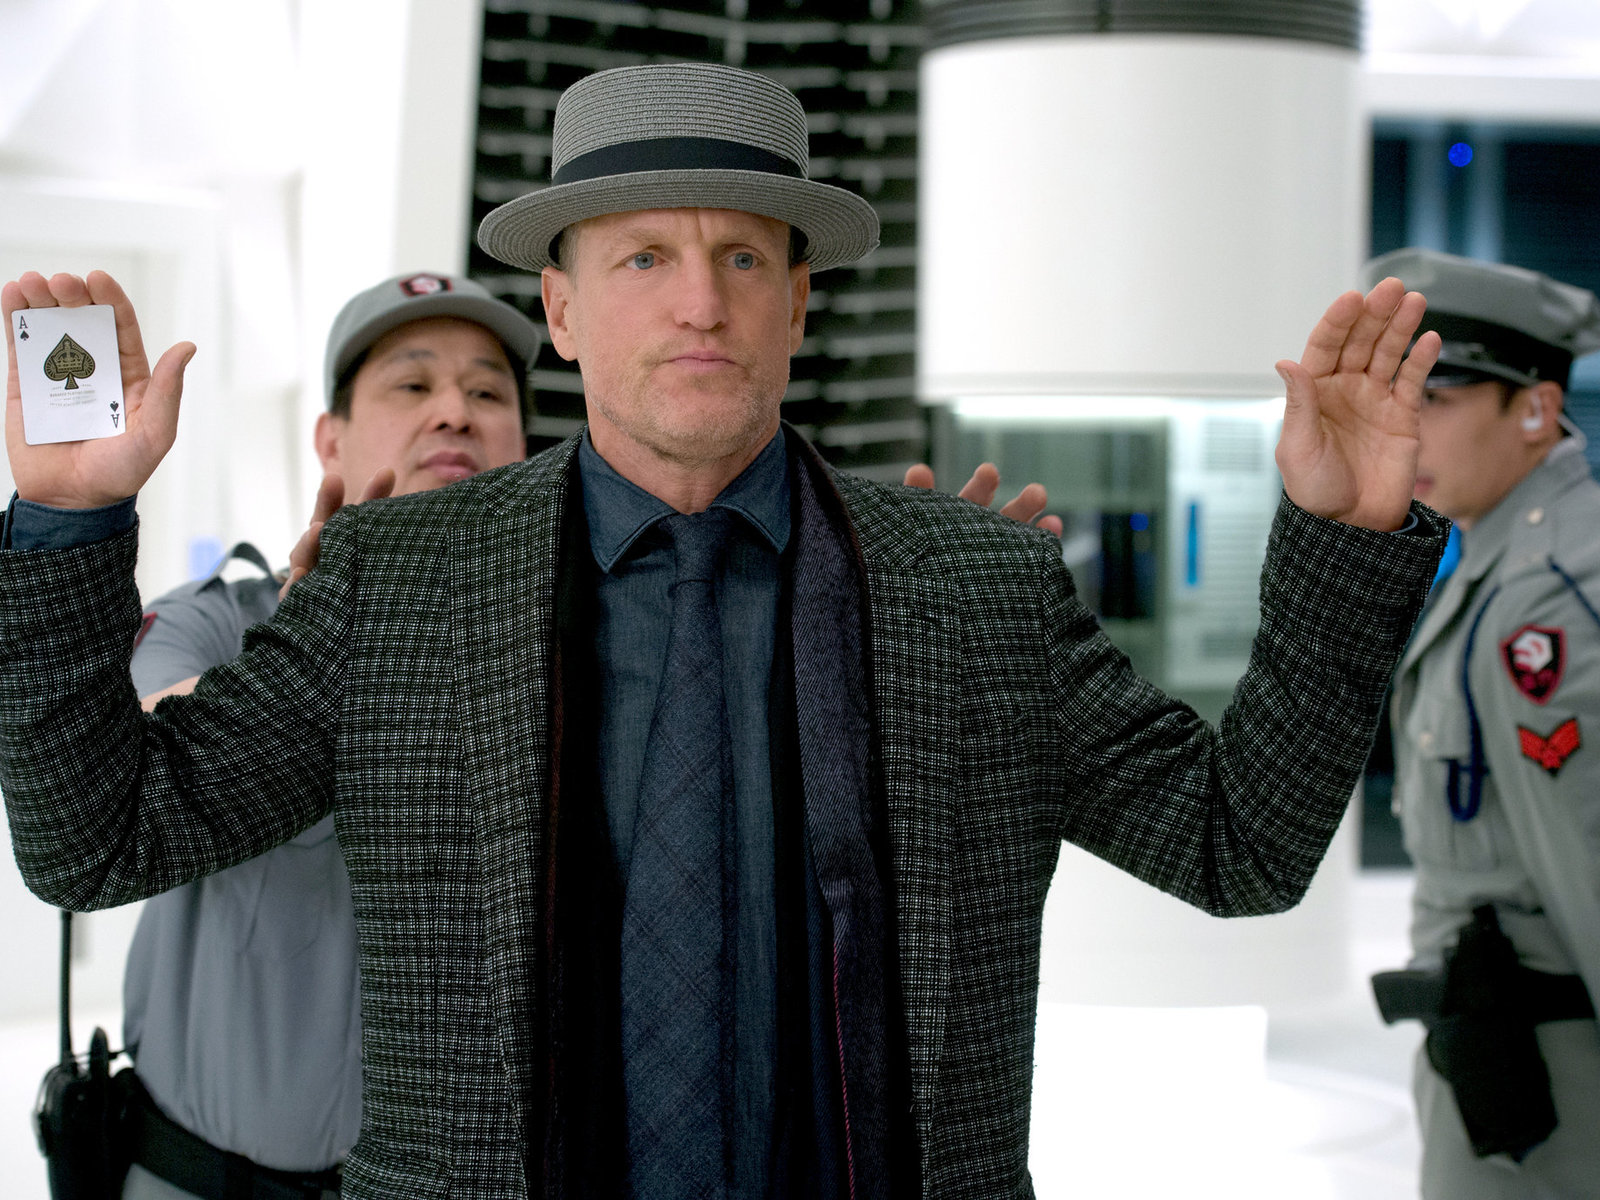 1600x1200 Woody Harrelson Now You See Me 2 1600x1200 Resolution HD